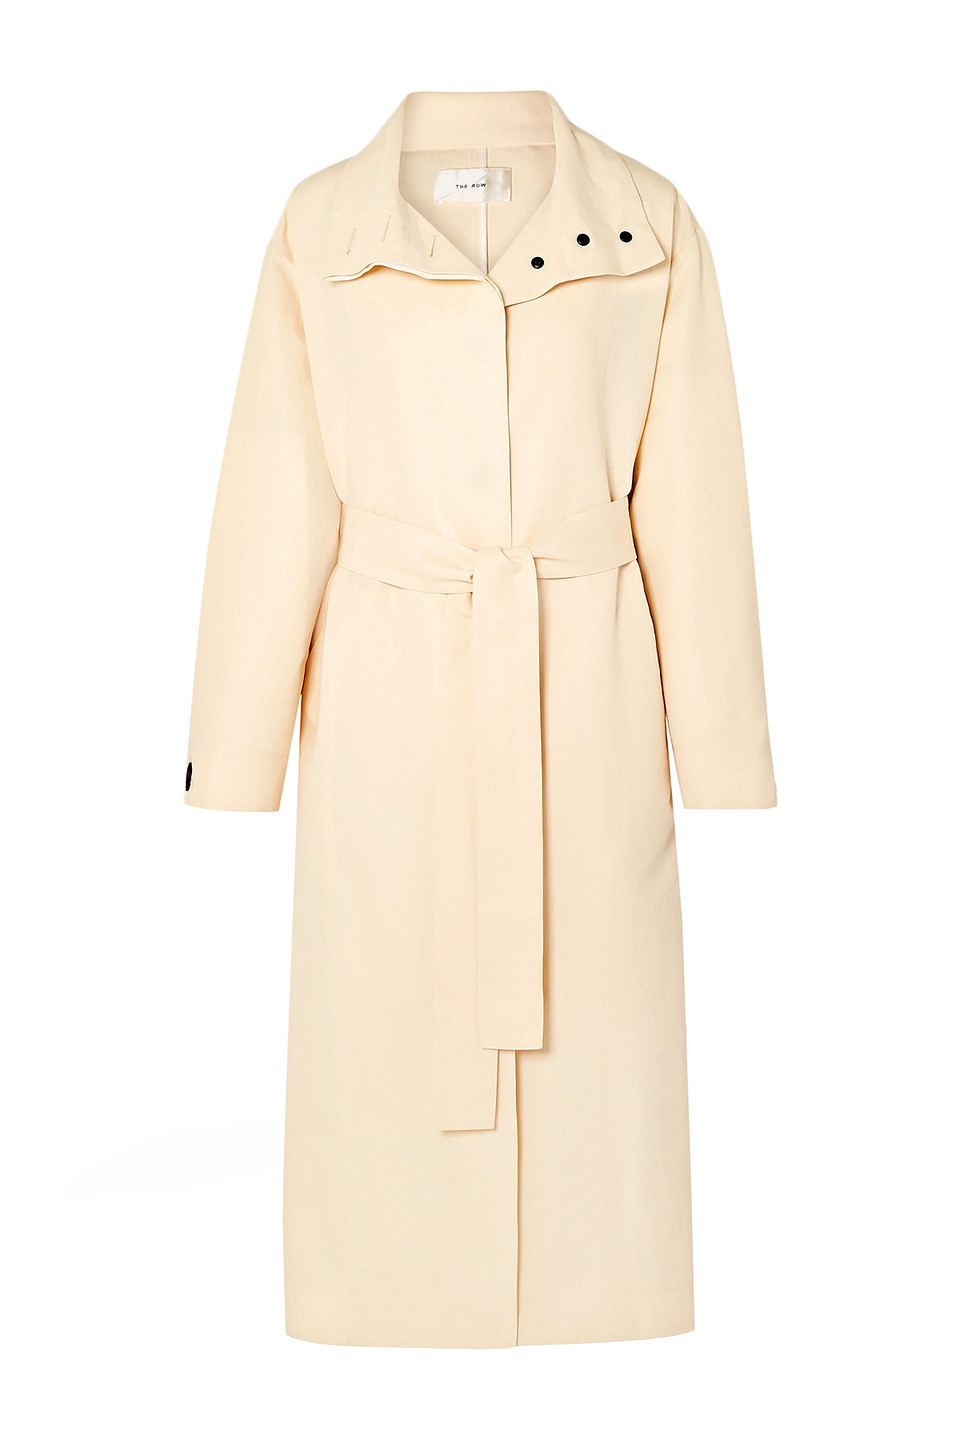 The Row   The Row Woman Panae Silk And Cotton-blend Trench Coat Ivory   Clouty